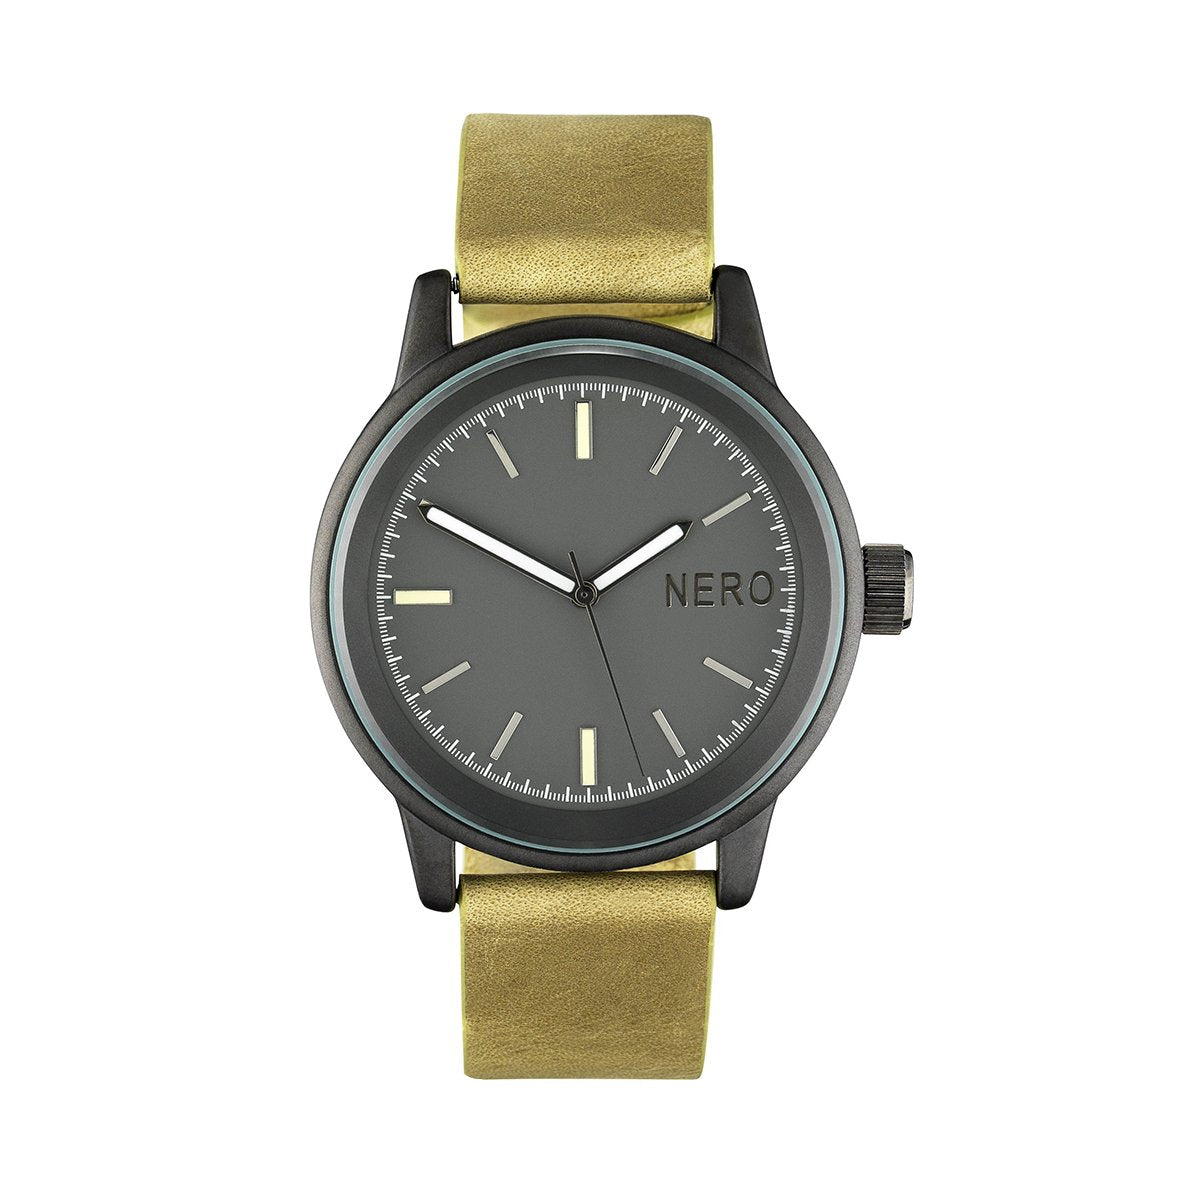 Nero Steel 112 Lime Leather Strap Unisex Watch